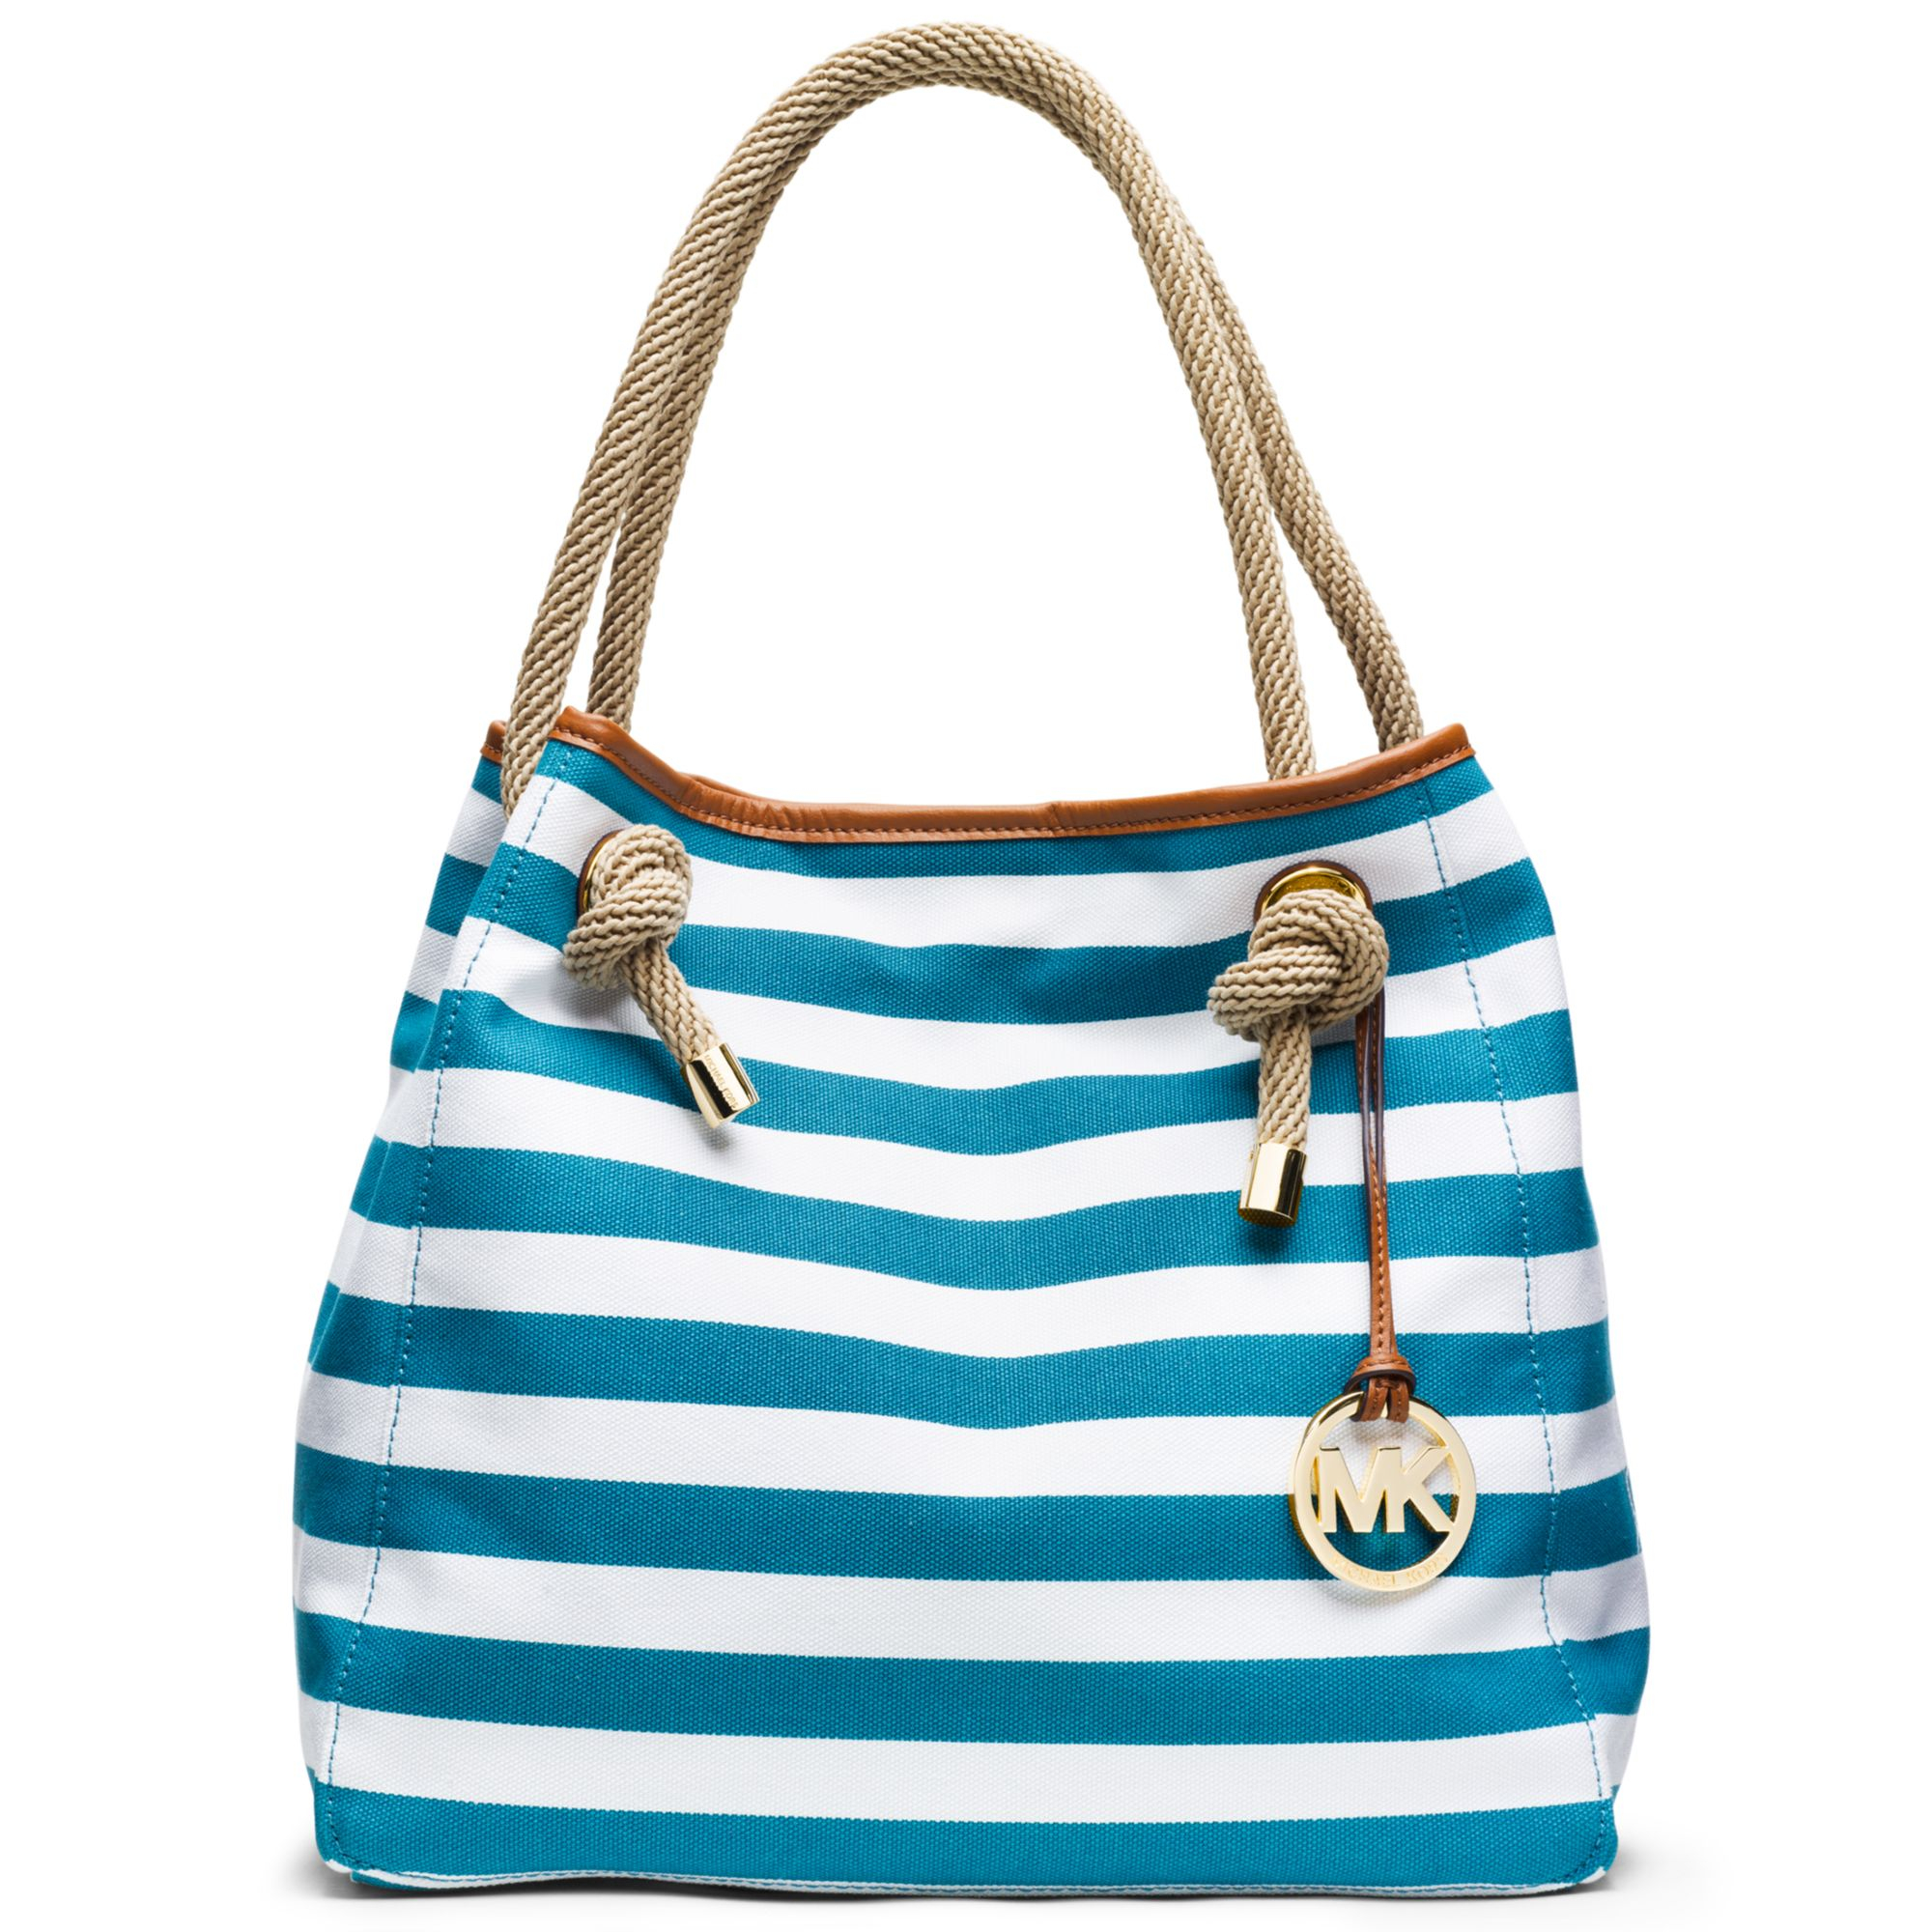 69e3cfe6850b ... where to buy gallery. previously sold at macys womens michael kors  marina b63a3 39dd9